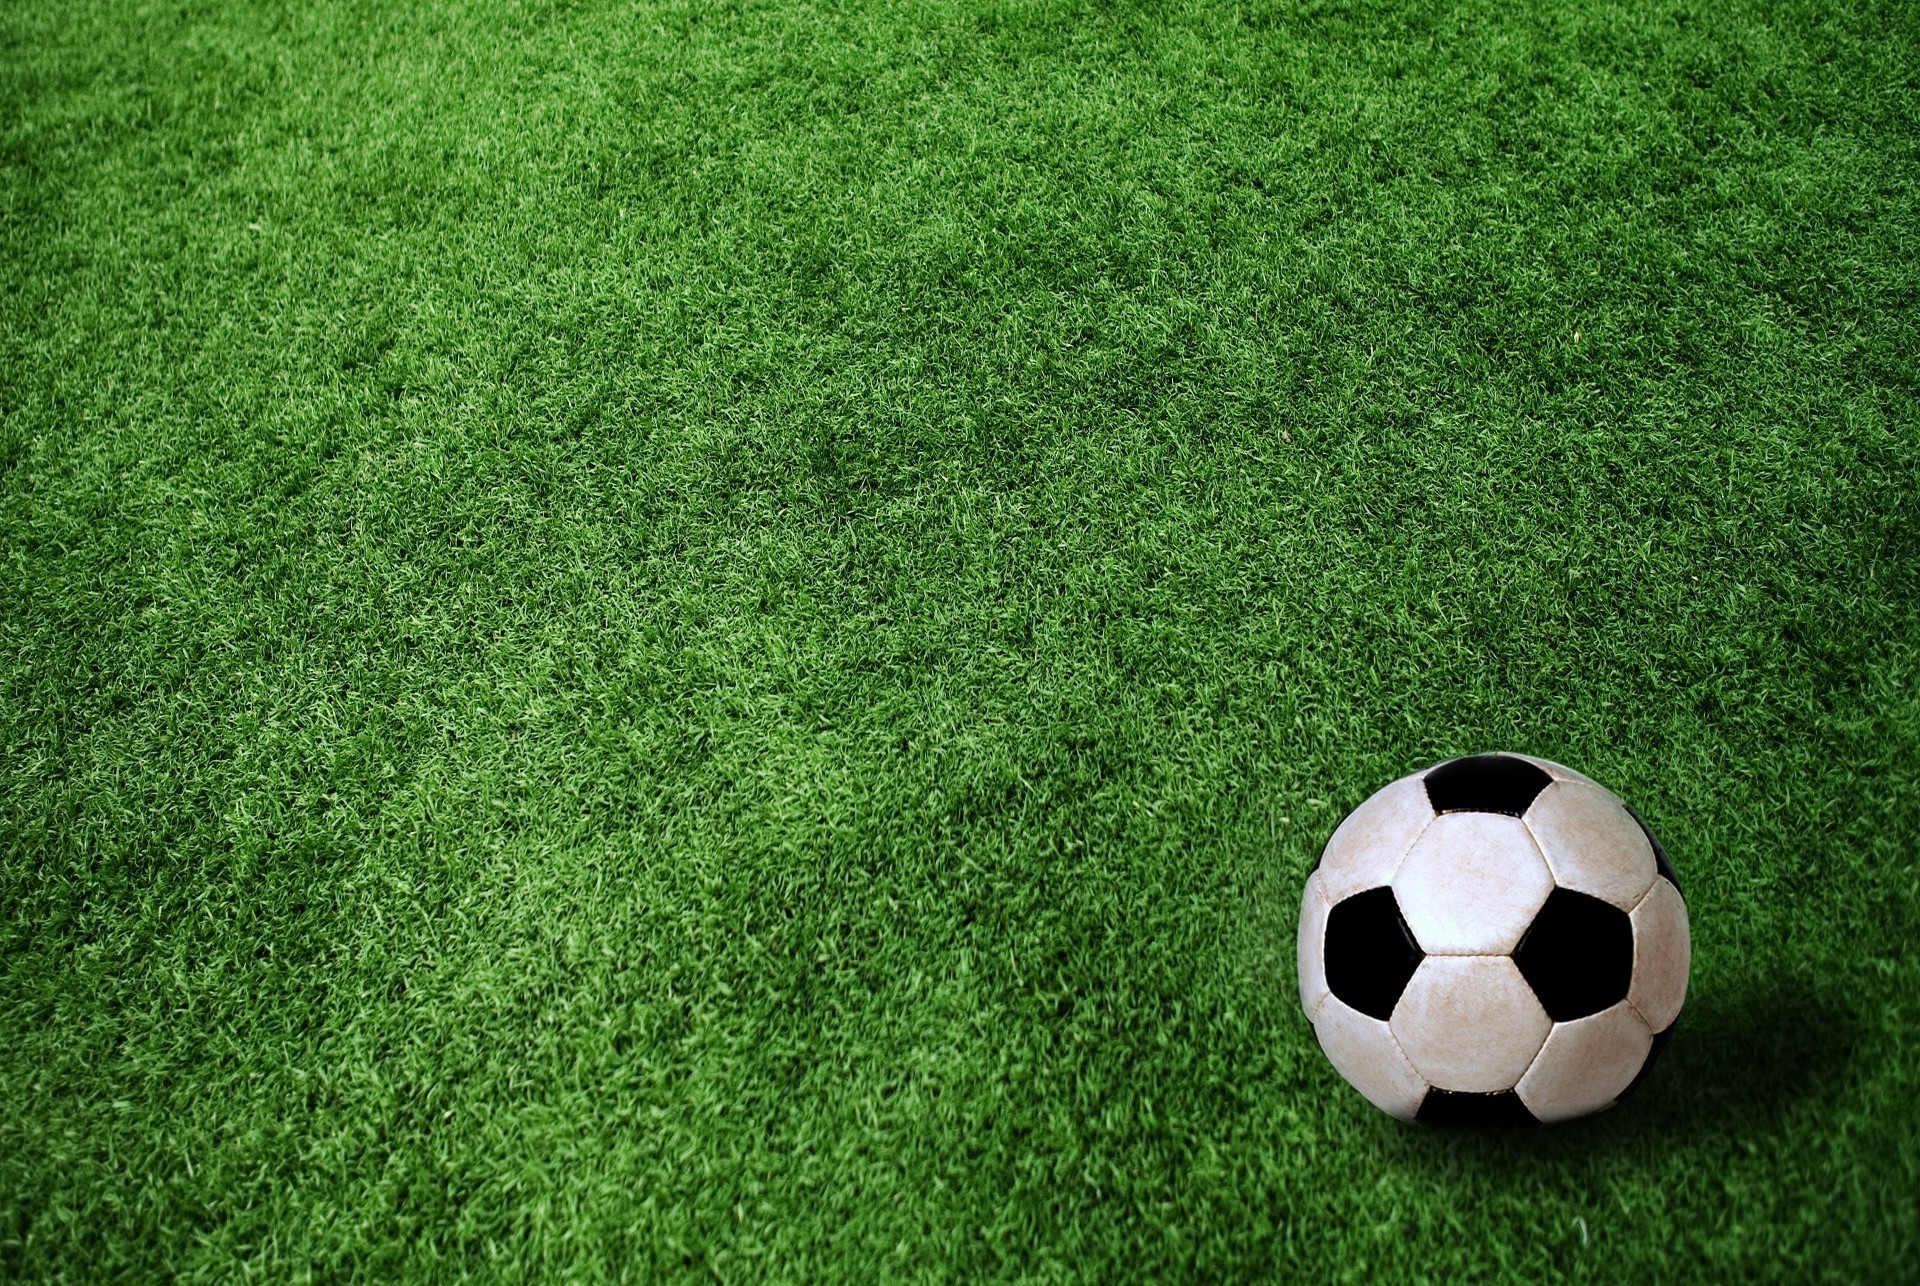 Free Soccer Wallpaper: Soccer Ball On Green Field. Android Wallpapers For Free